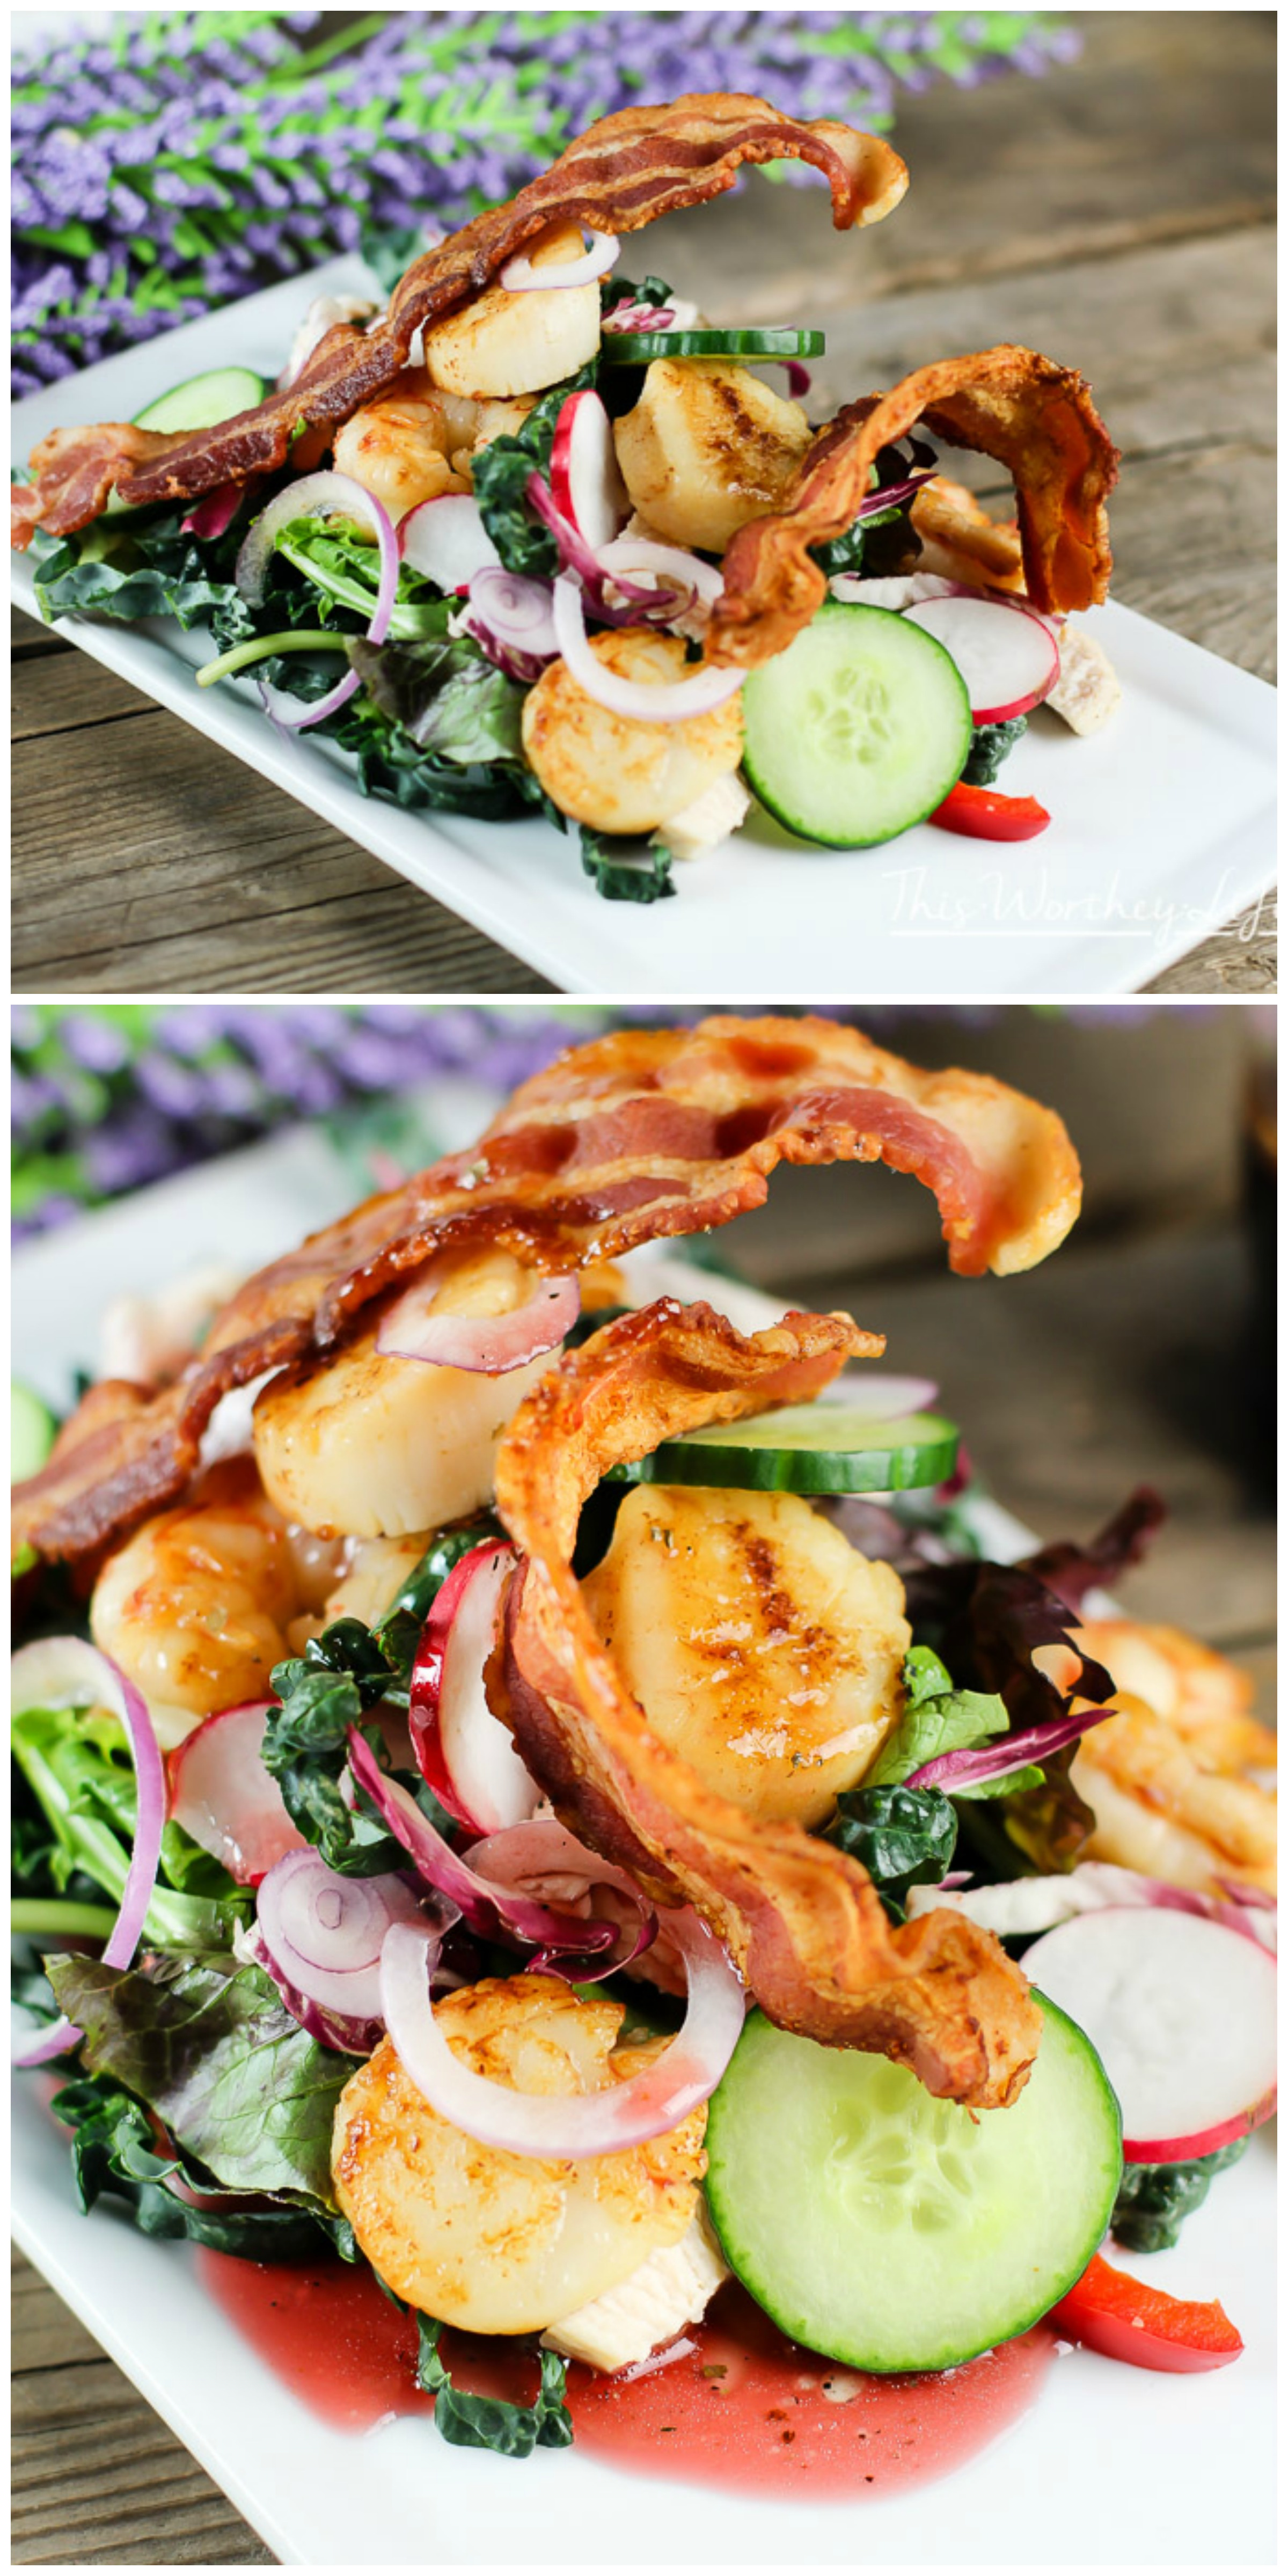 Salads are the perfect light summer meal ideas to make! We took your original surf + turf recipe to make the ultimate surf + turf salad. Loaded with chicken, scallops, and bacon, this summer salad recipe is bangin' with a ton of delicious goodness! Get the recipe on the blog- The Ultimate Turf + Surf Summer Salad